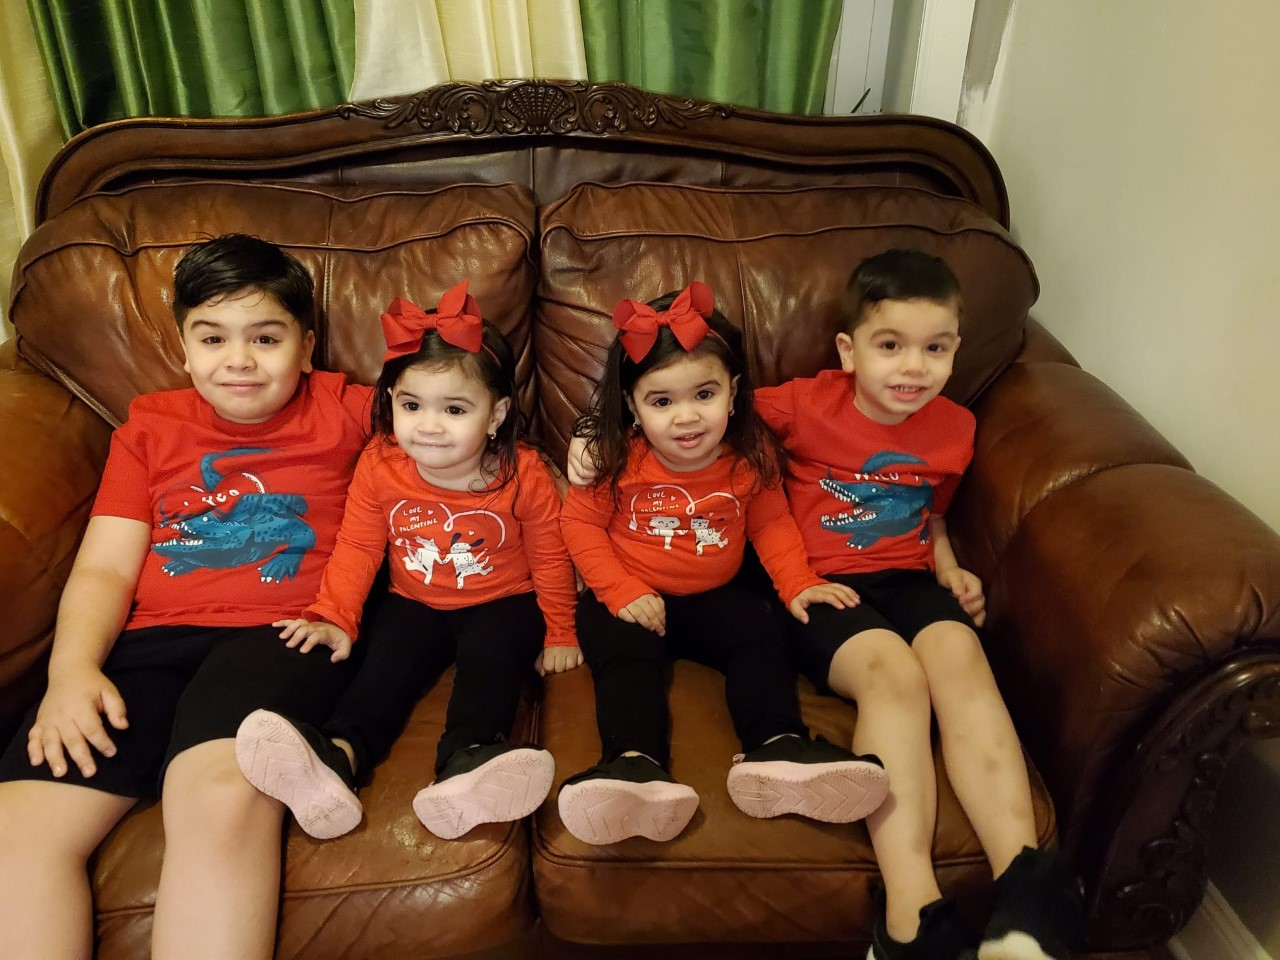 Ramos twins and their brothers in red.